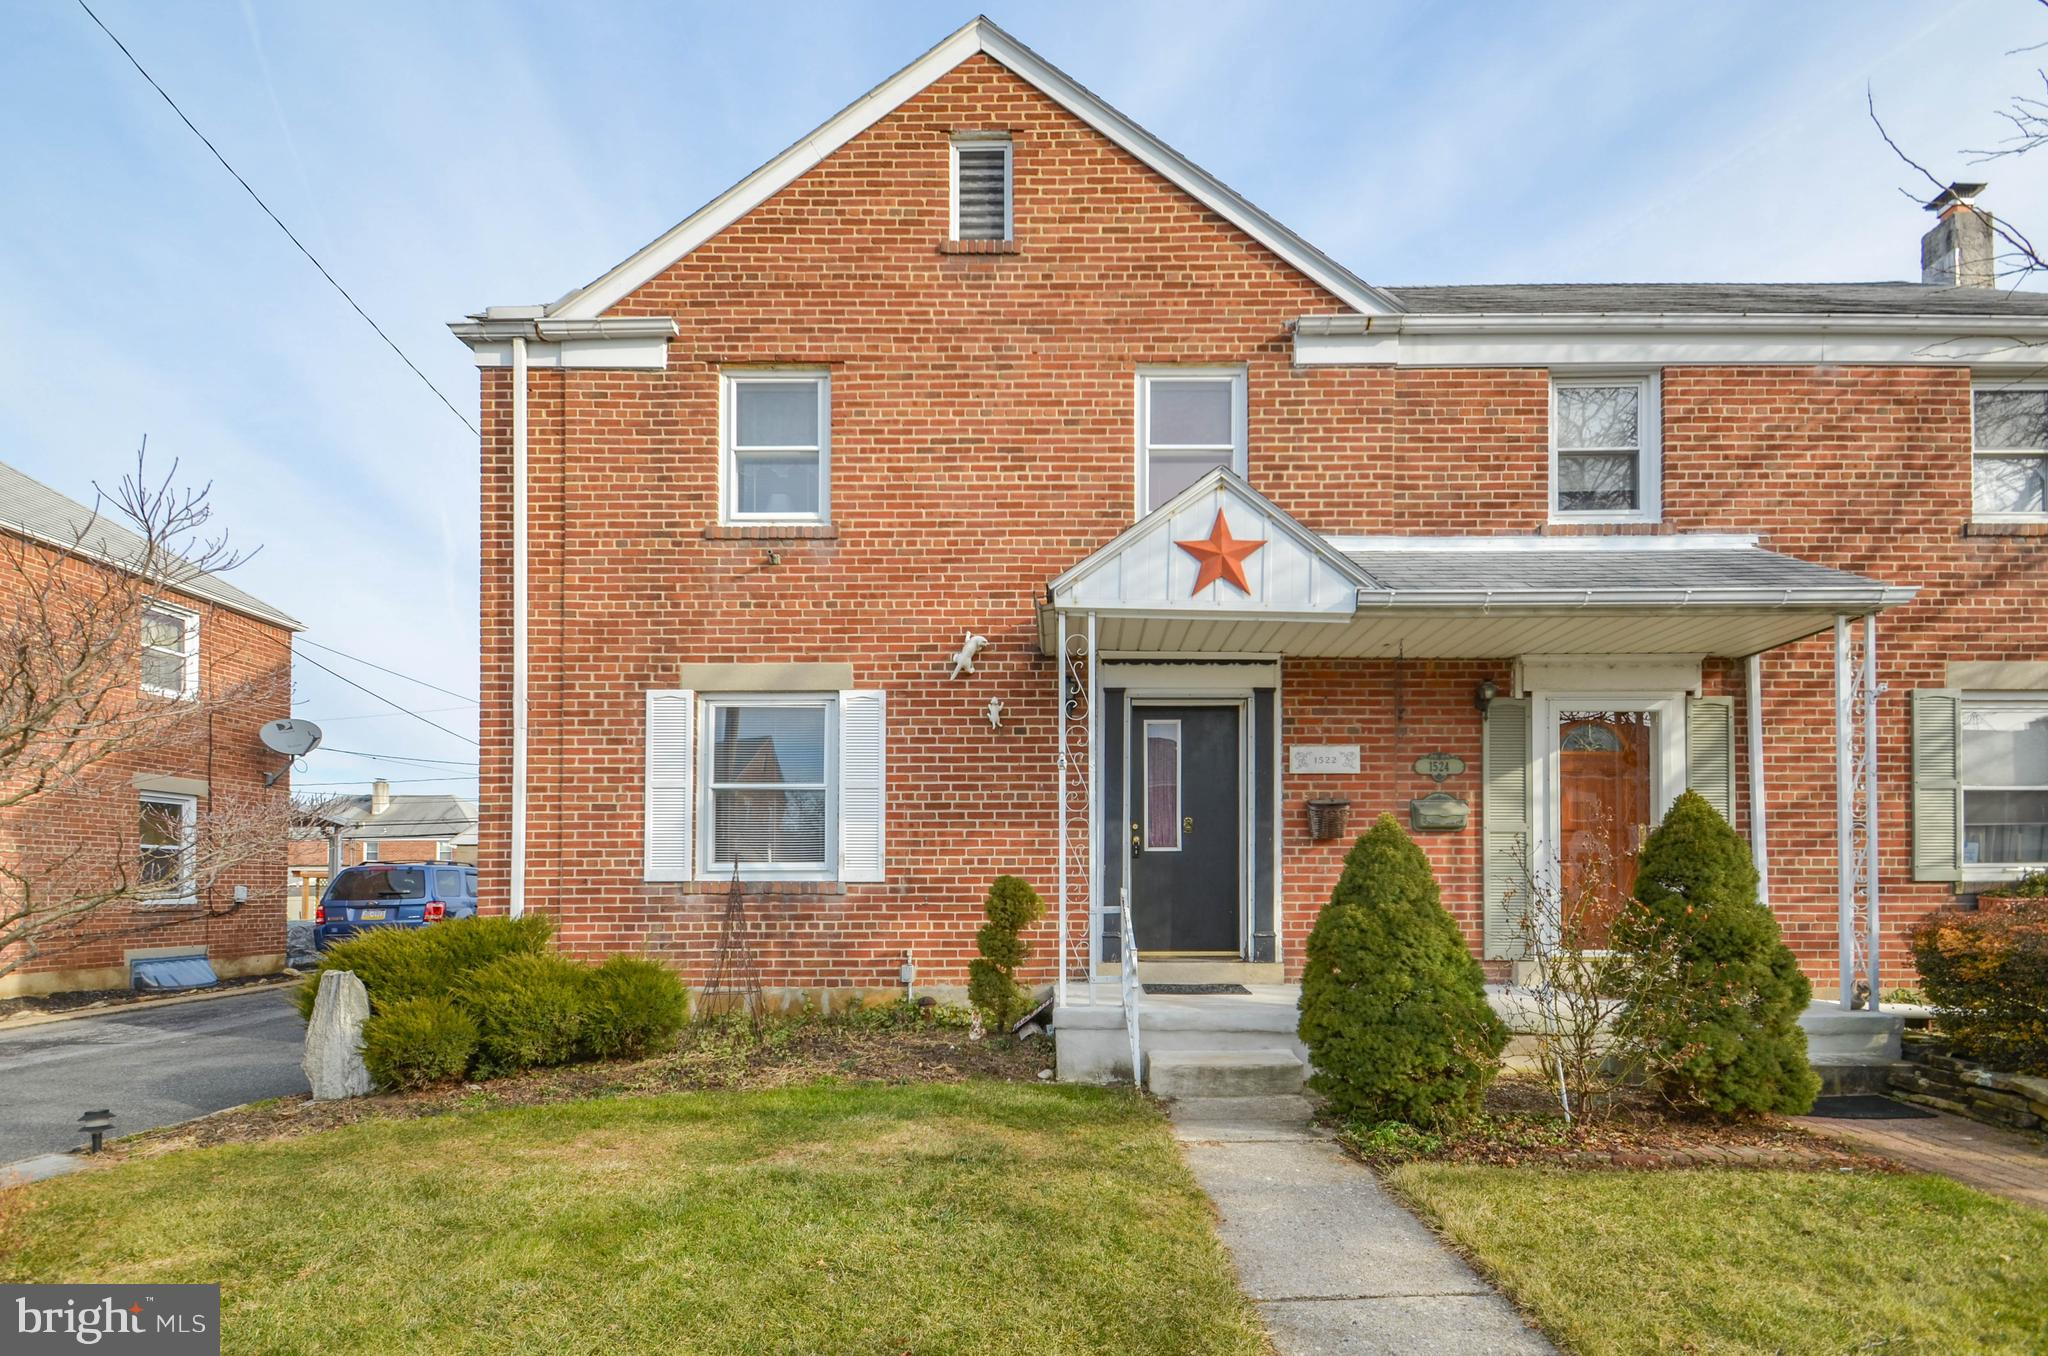 1522 CATALINA AVENUE, ALLENTOWN, PA 18103